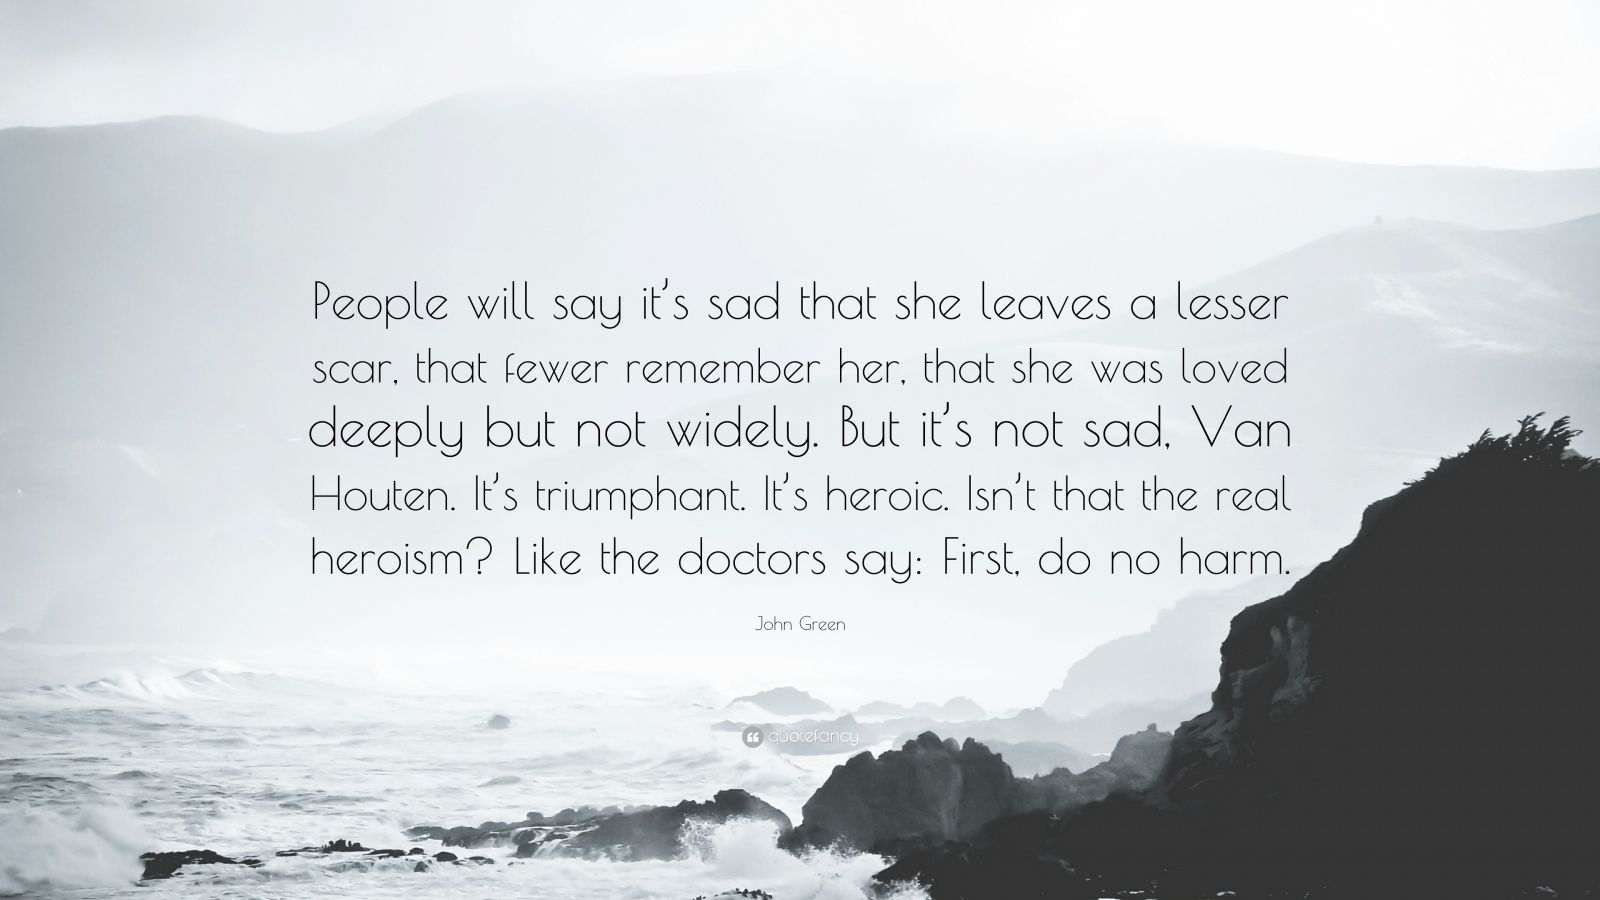 "John Green Quote: ""People will say it's sad that she leaves a lesser scar, that fewer remember her, that she was loved deeply but not widely. But it's not sad, Van Houten. It's triumphant. It's heroic. Isn't that the real heroism? Like the doctors say: First, do no harm."""